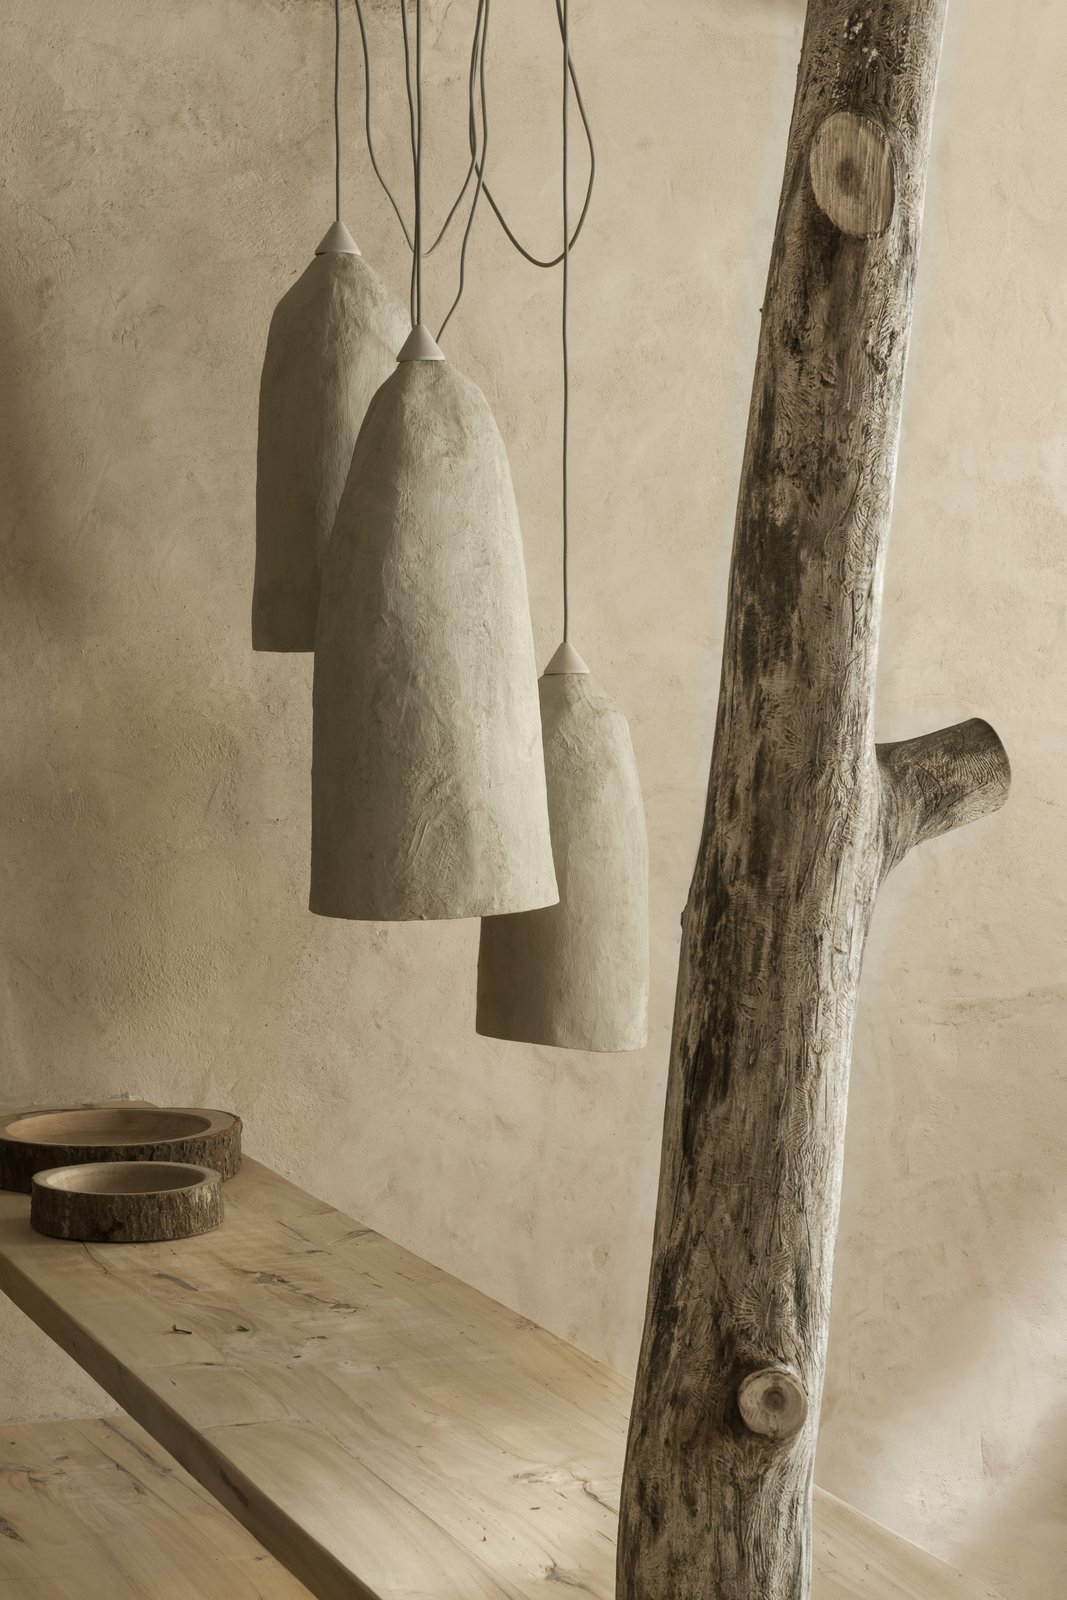 Photo 5 of 9 in A Tree-Filled Spa That Brings Warm Modernism to a 900-Year-Old Tuscan Village